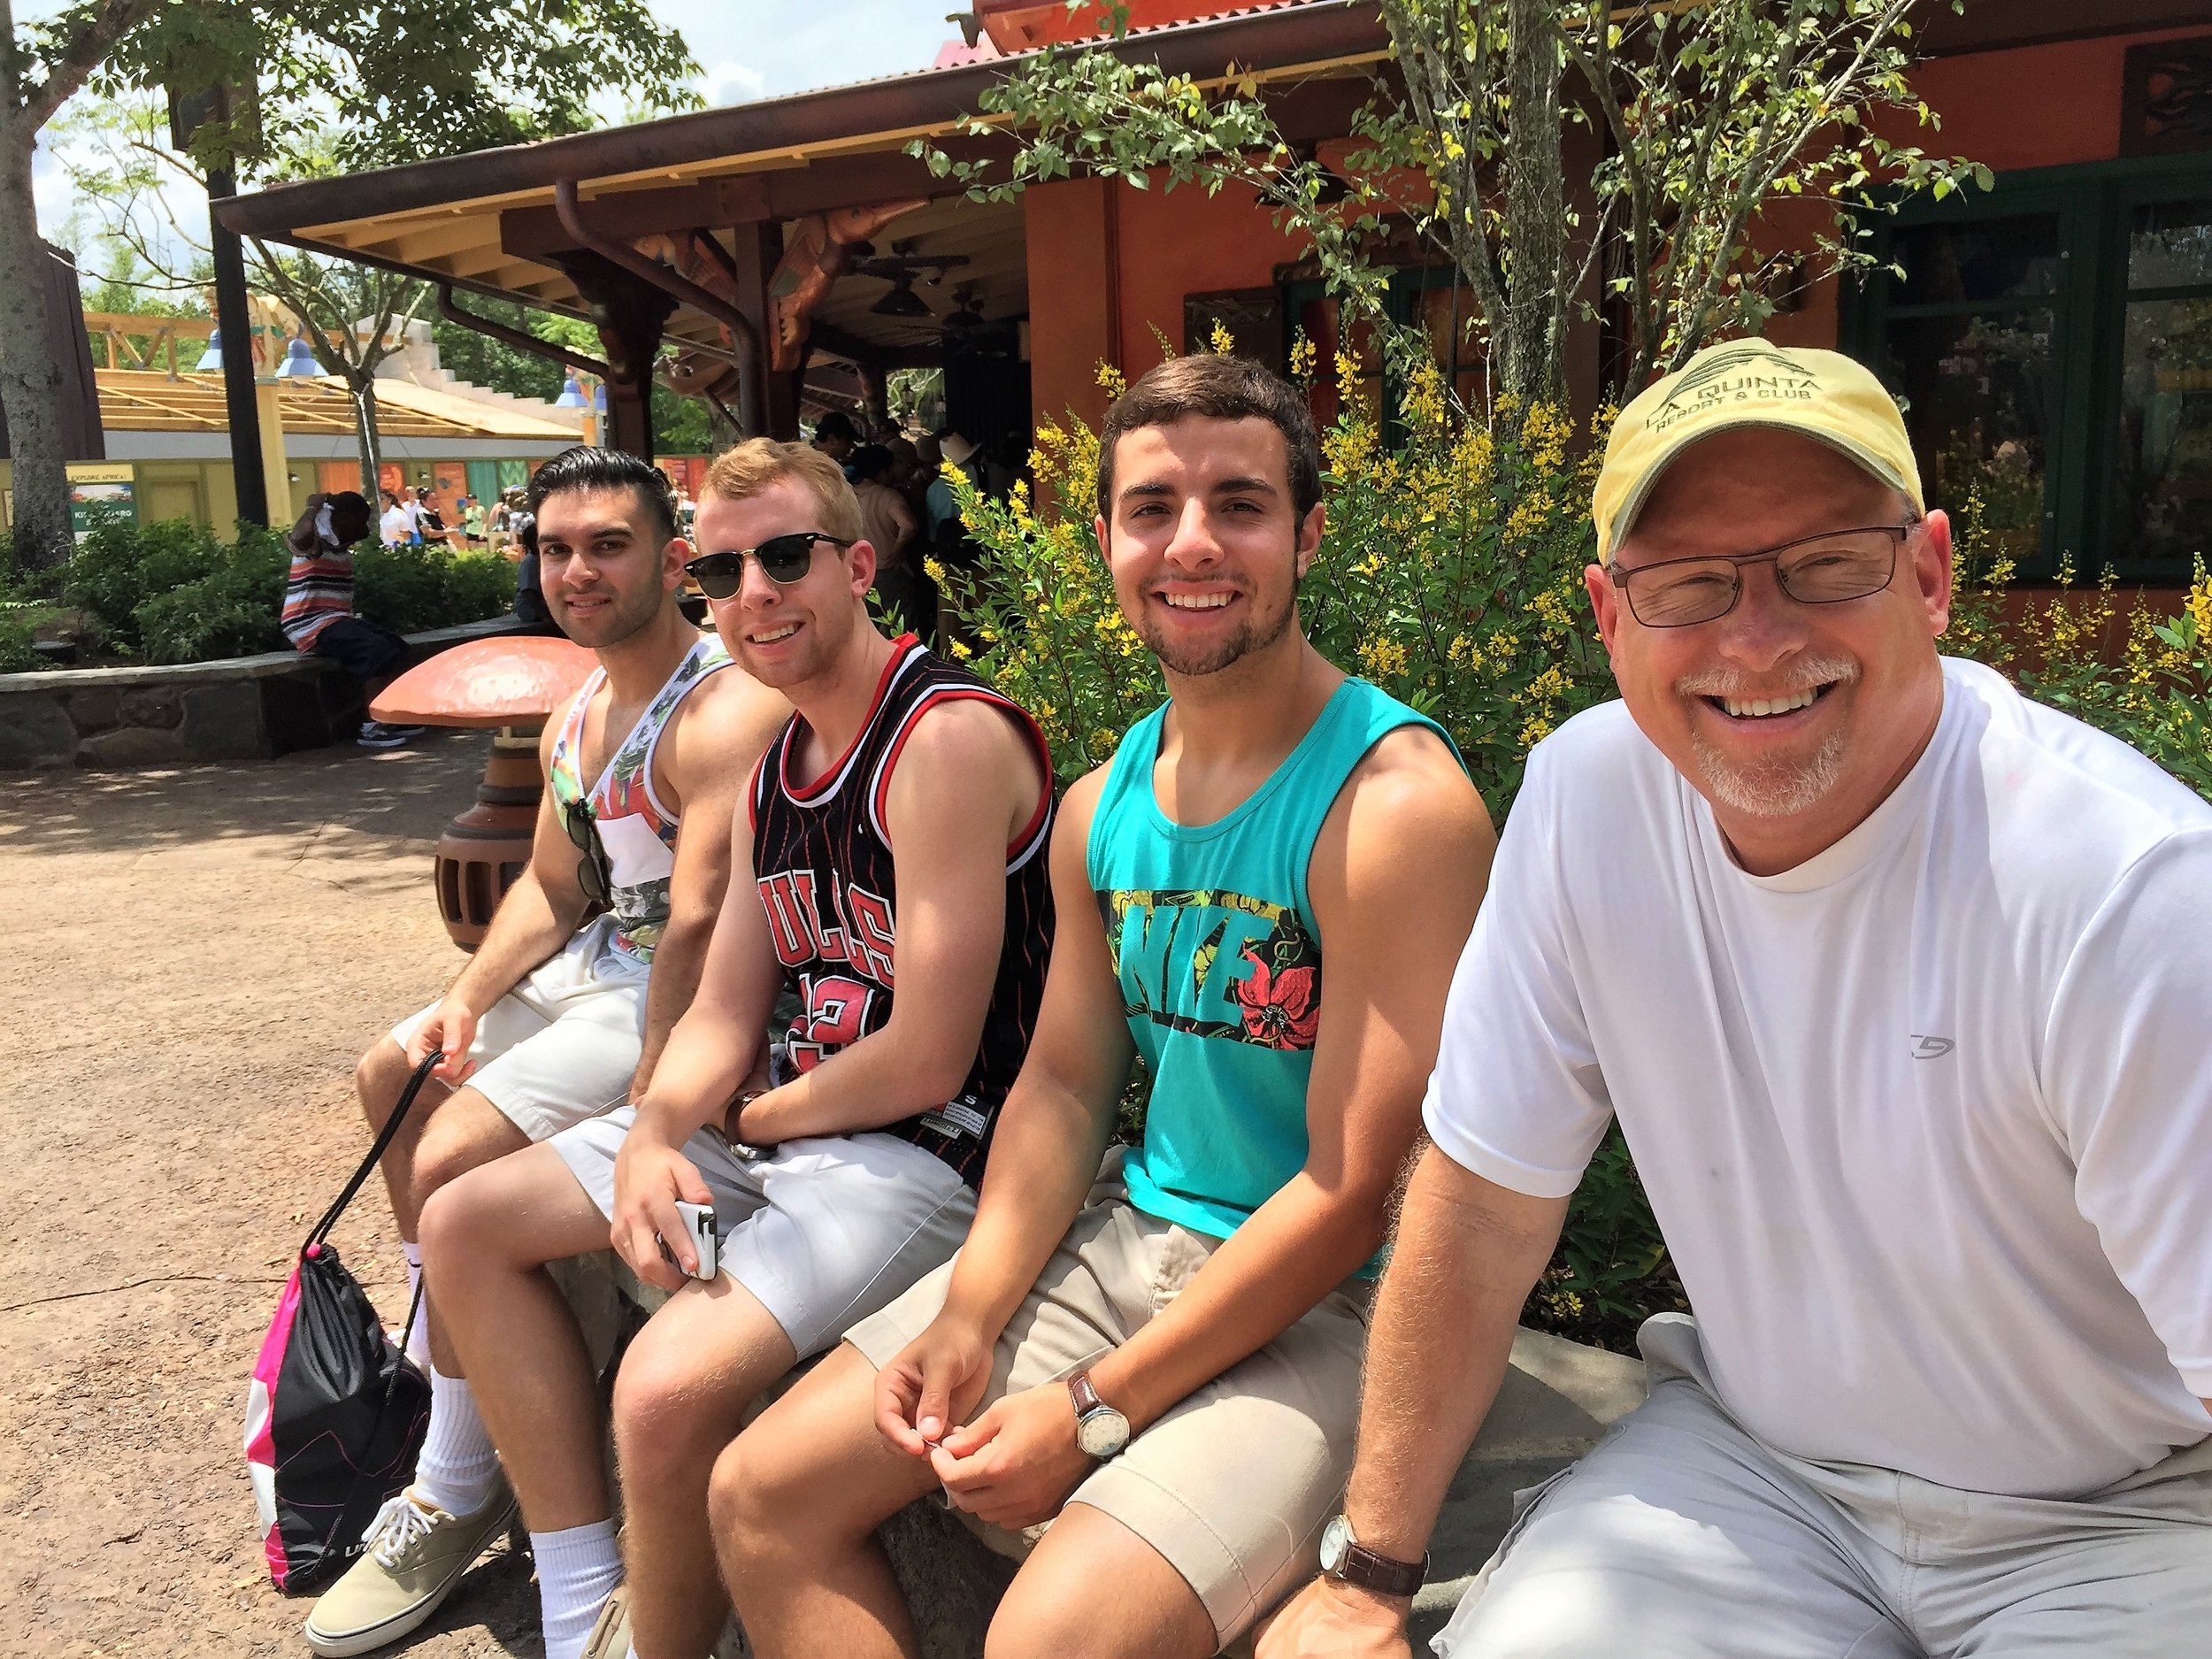 June 23, 2015. Family trip to Disney. Jhonny, Alec, Nick and Ed.